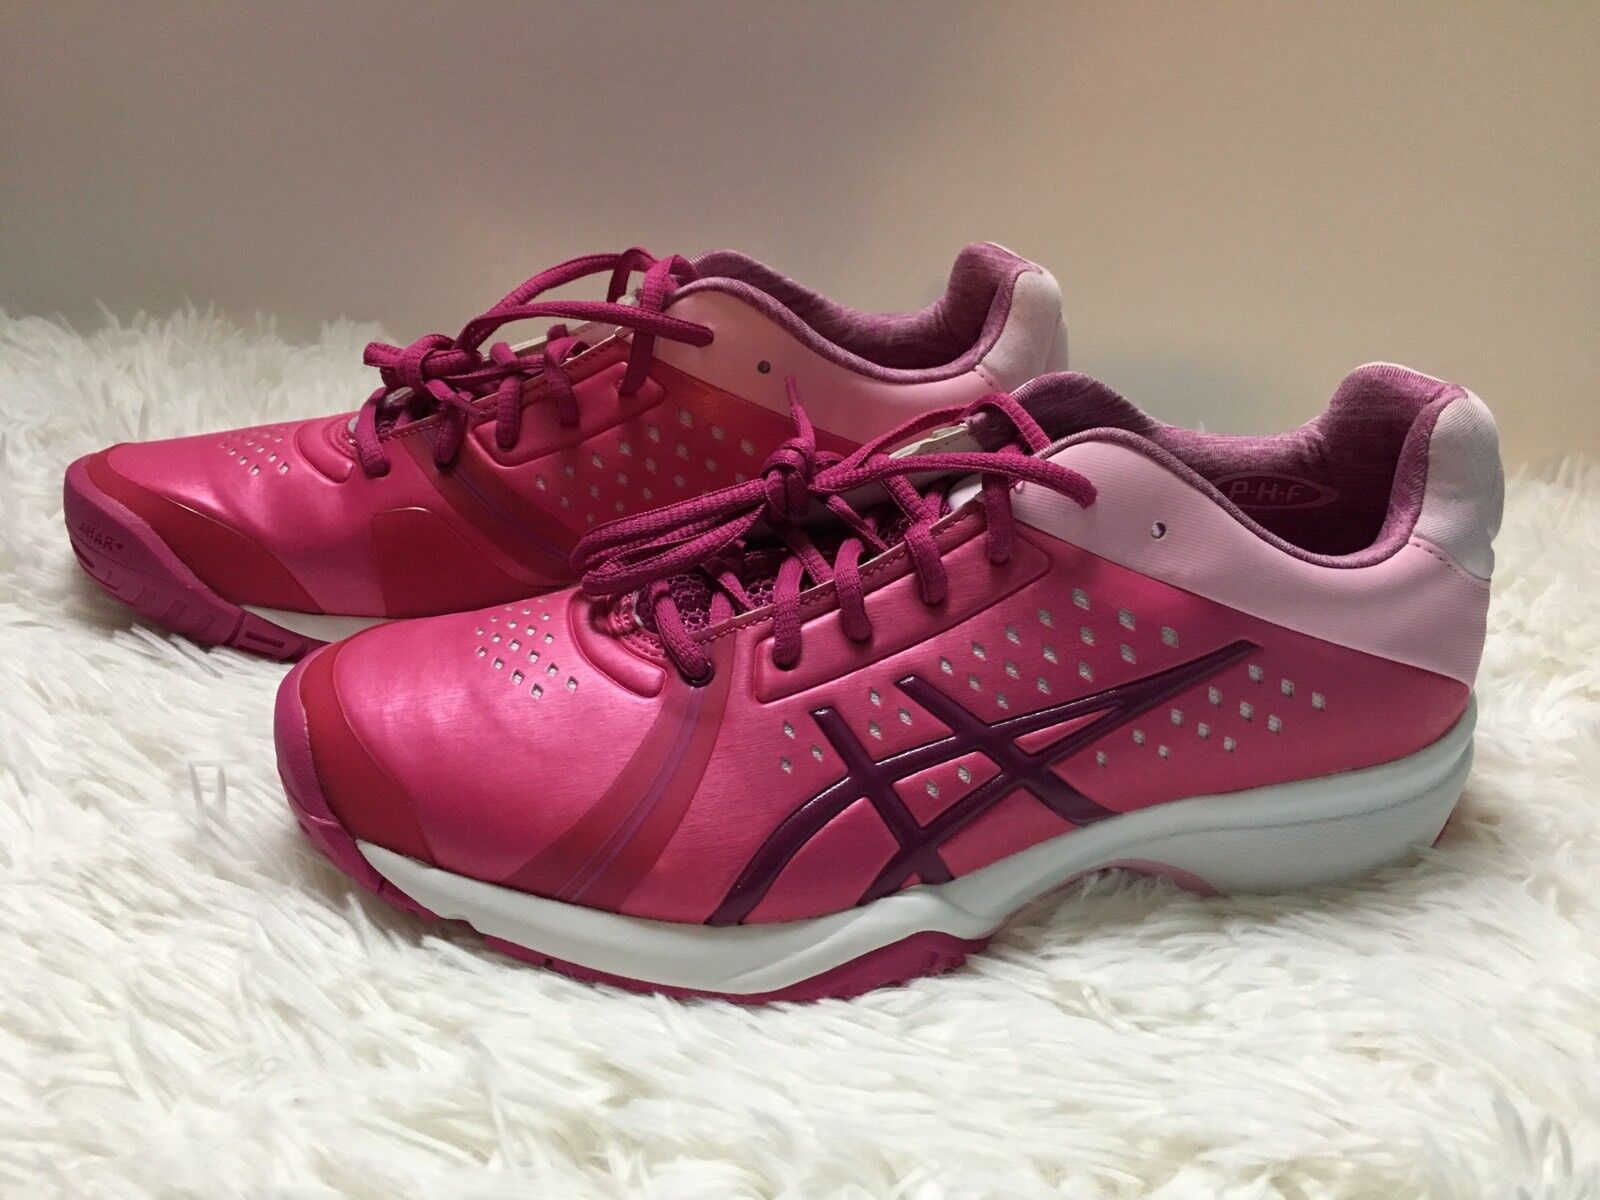 Asics Exercise Fitness Shoes Gel-Court Bella Berry Plum & Pink Athletic 8.5 New Cheap women's shoes women's shoes